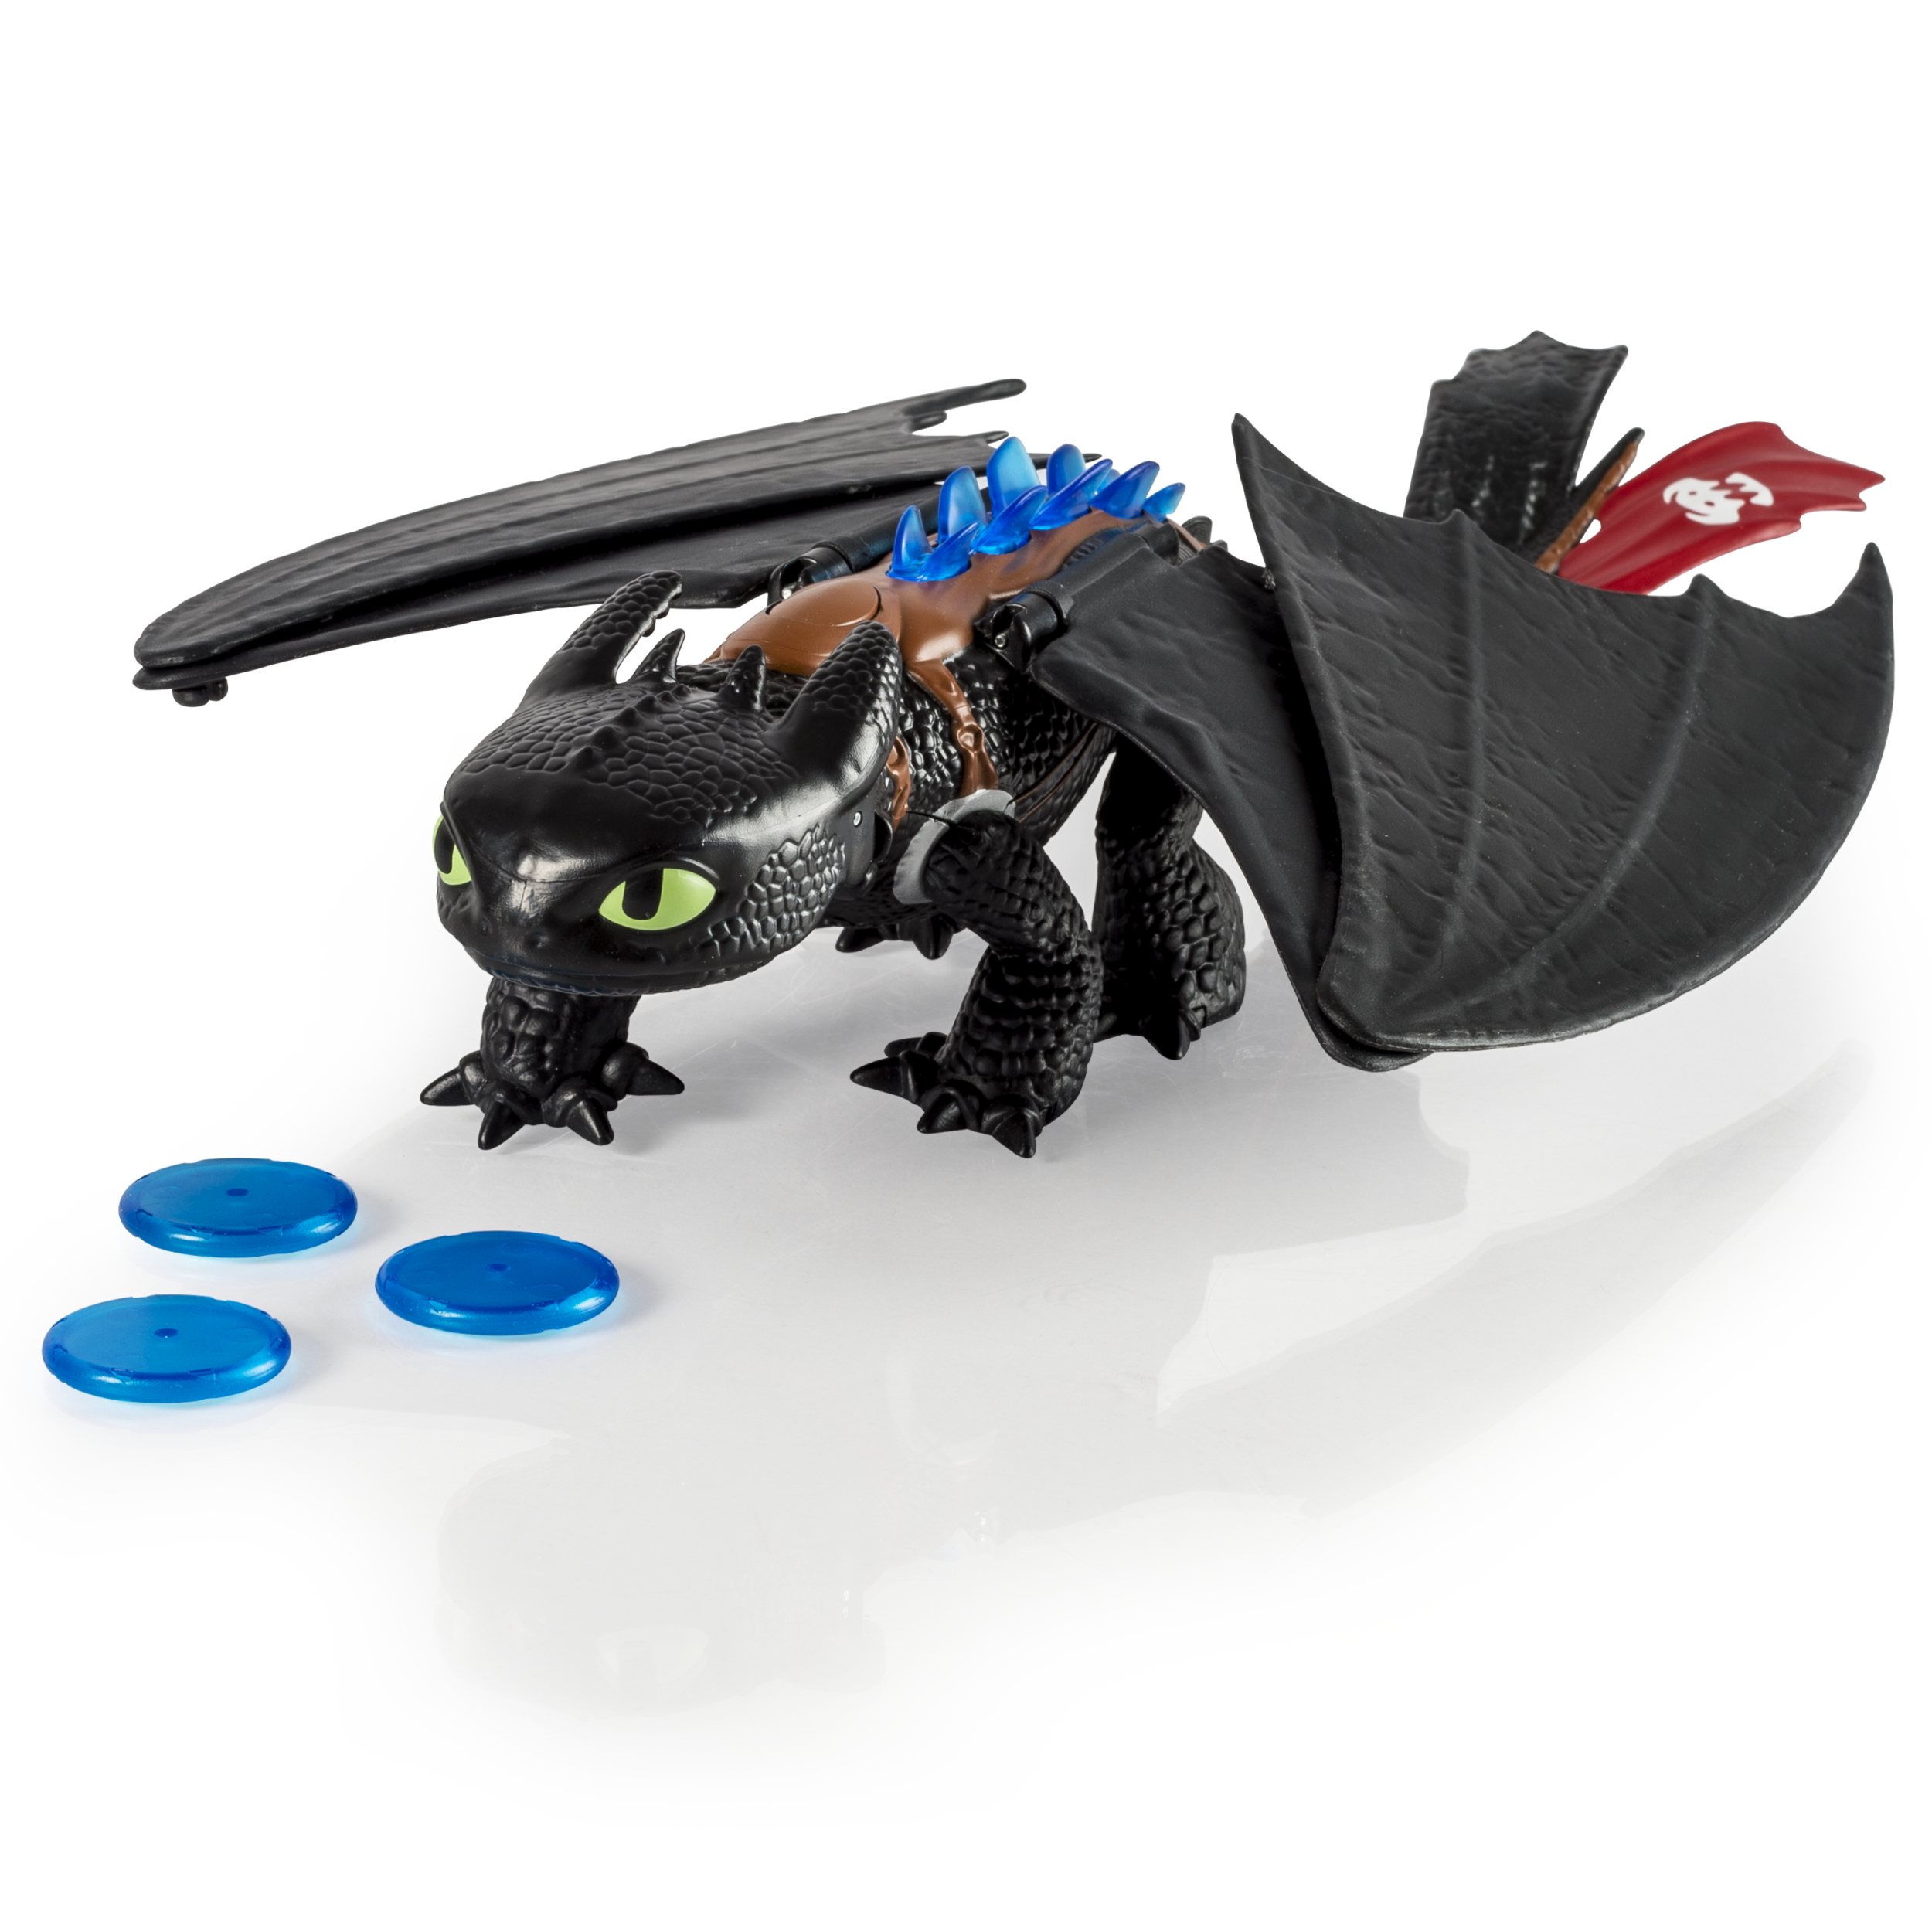 DreamWorks Dragons, Deluxe Electronic Blast & Roar Toothless